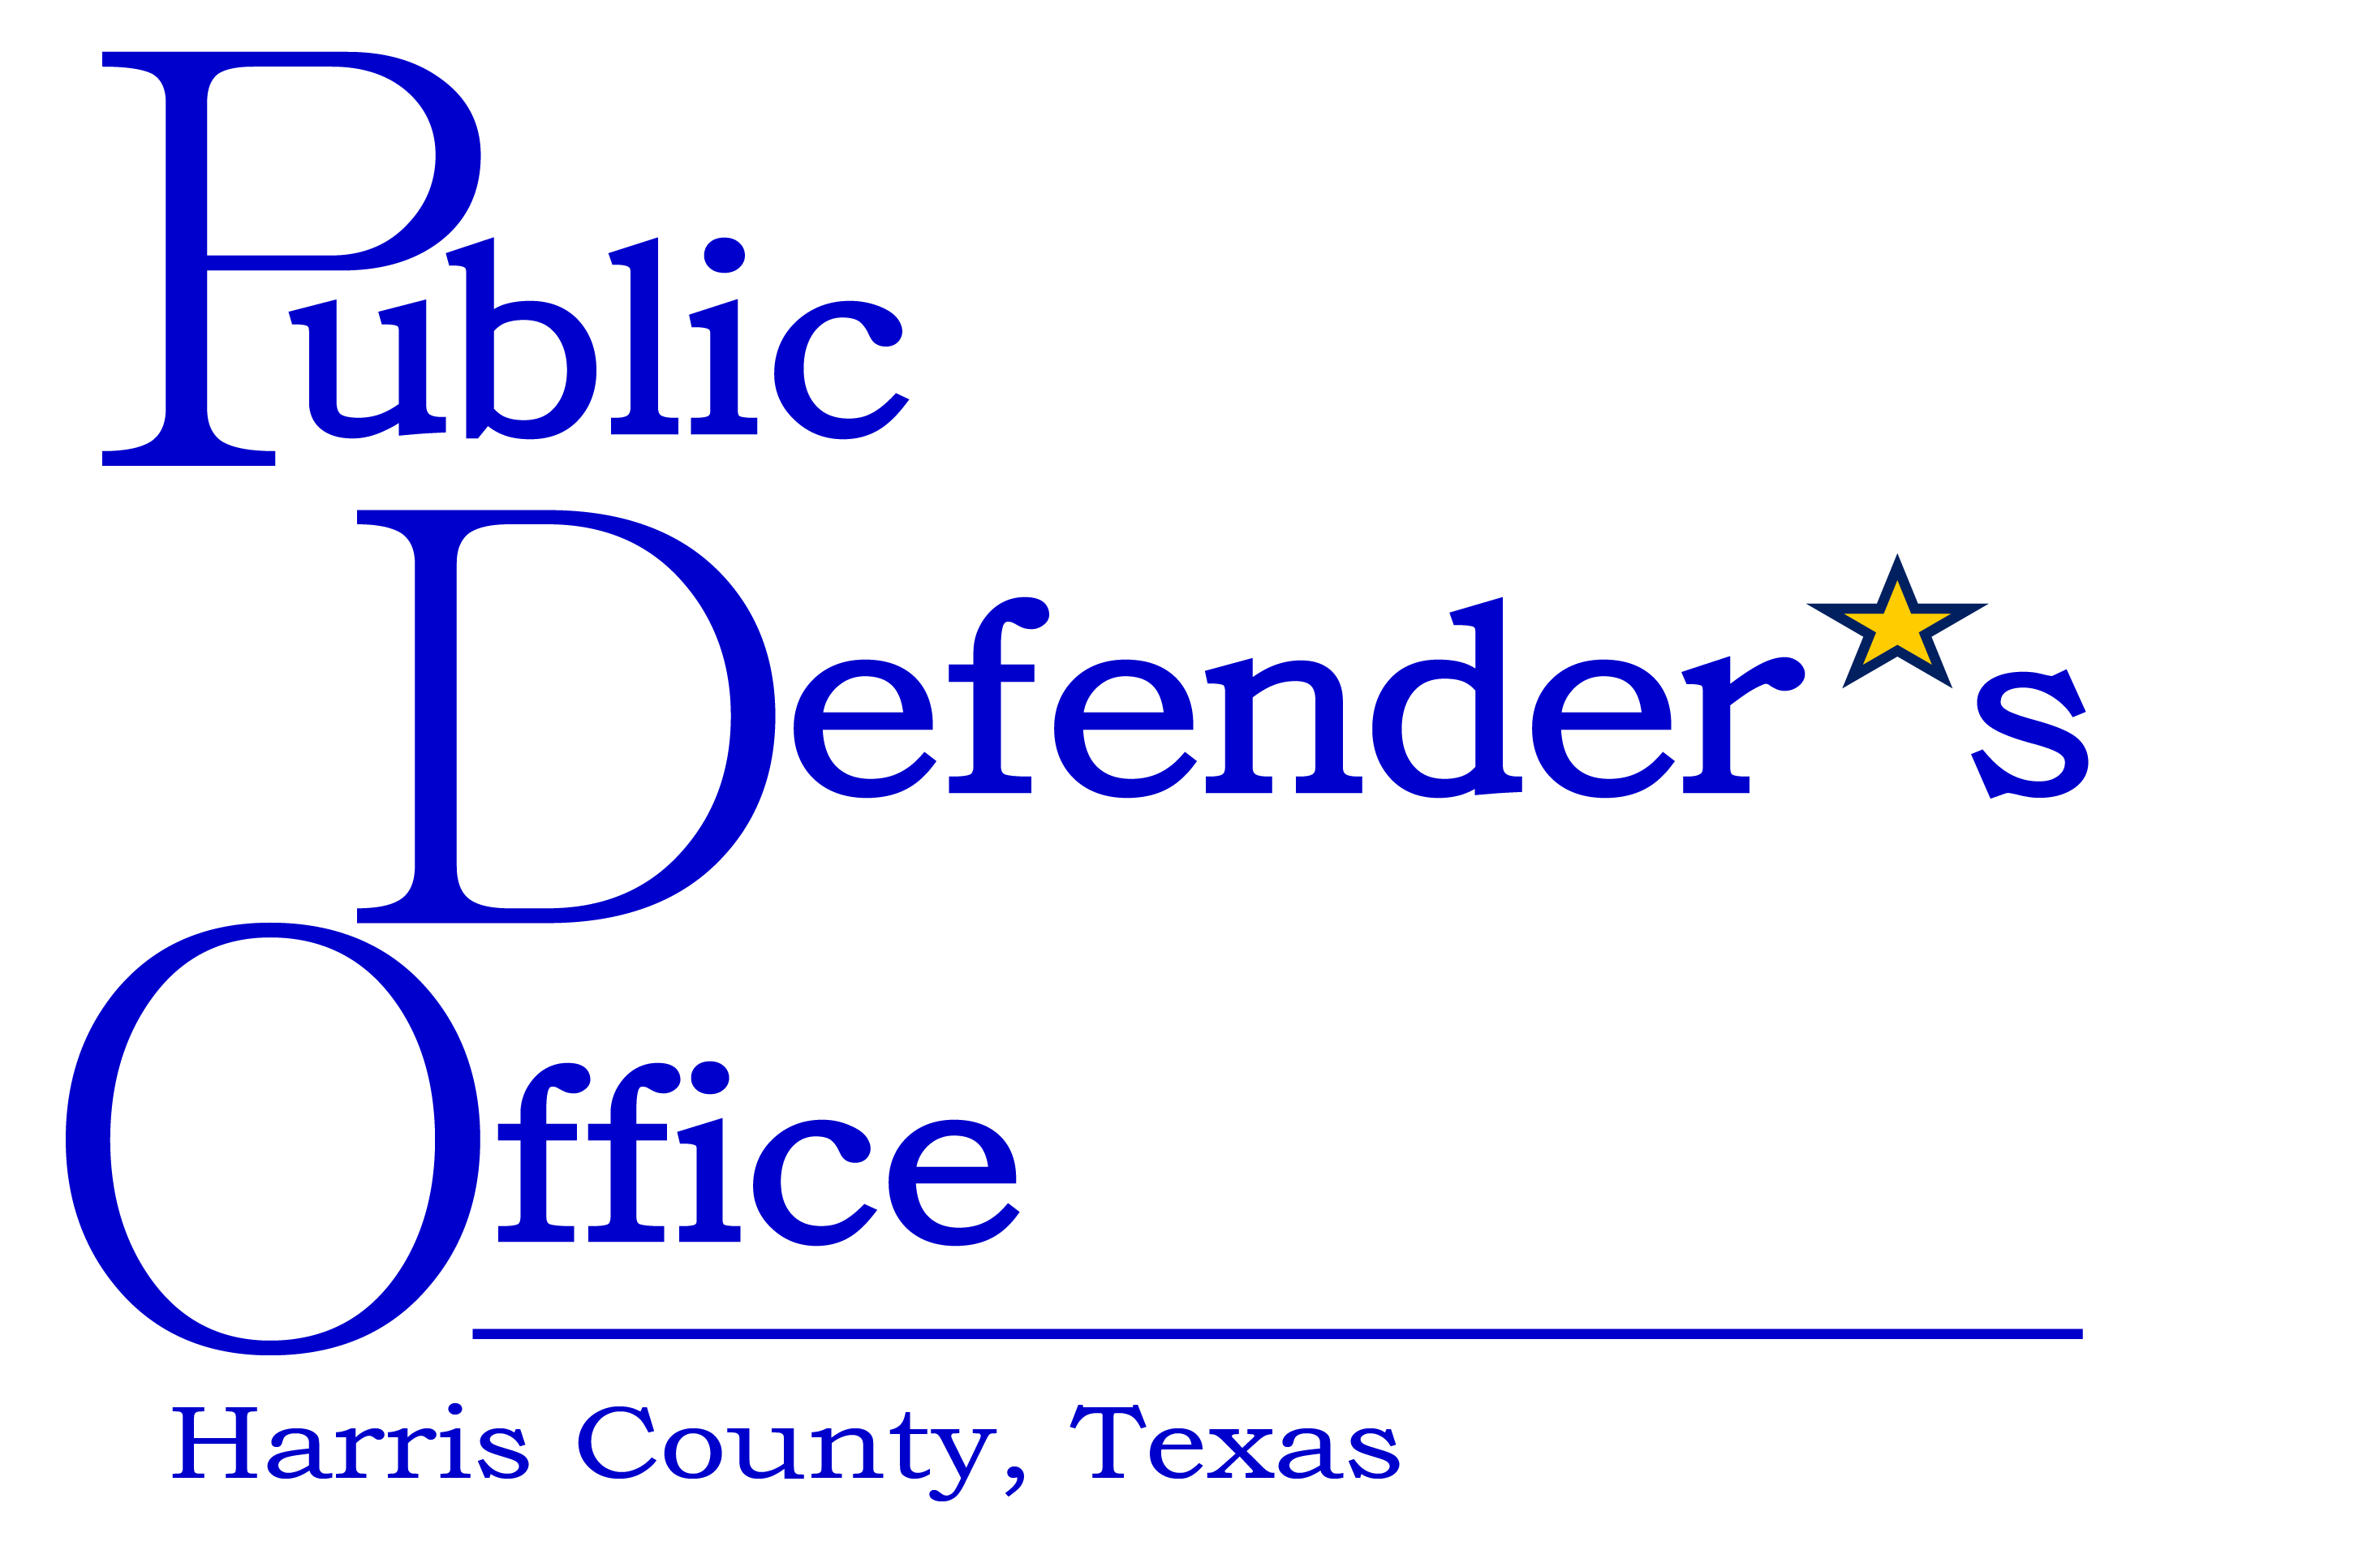 Harris County Public Defender's Office